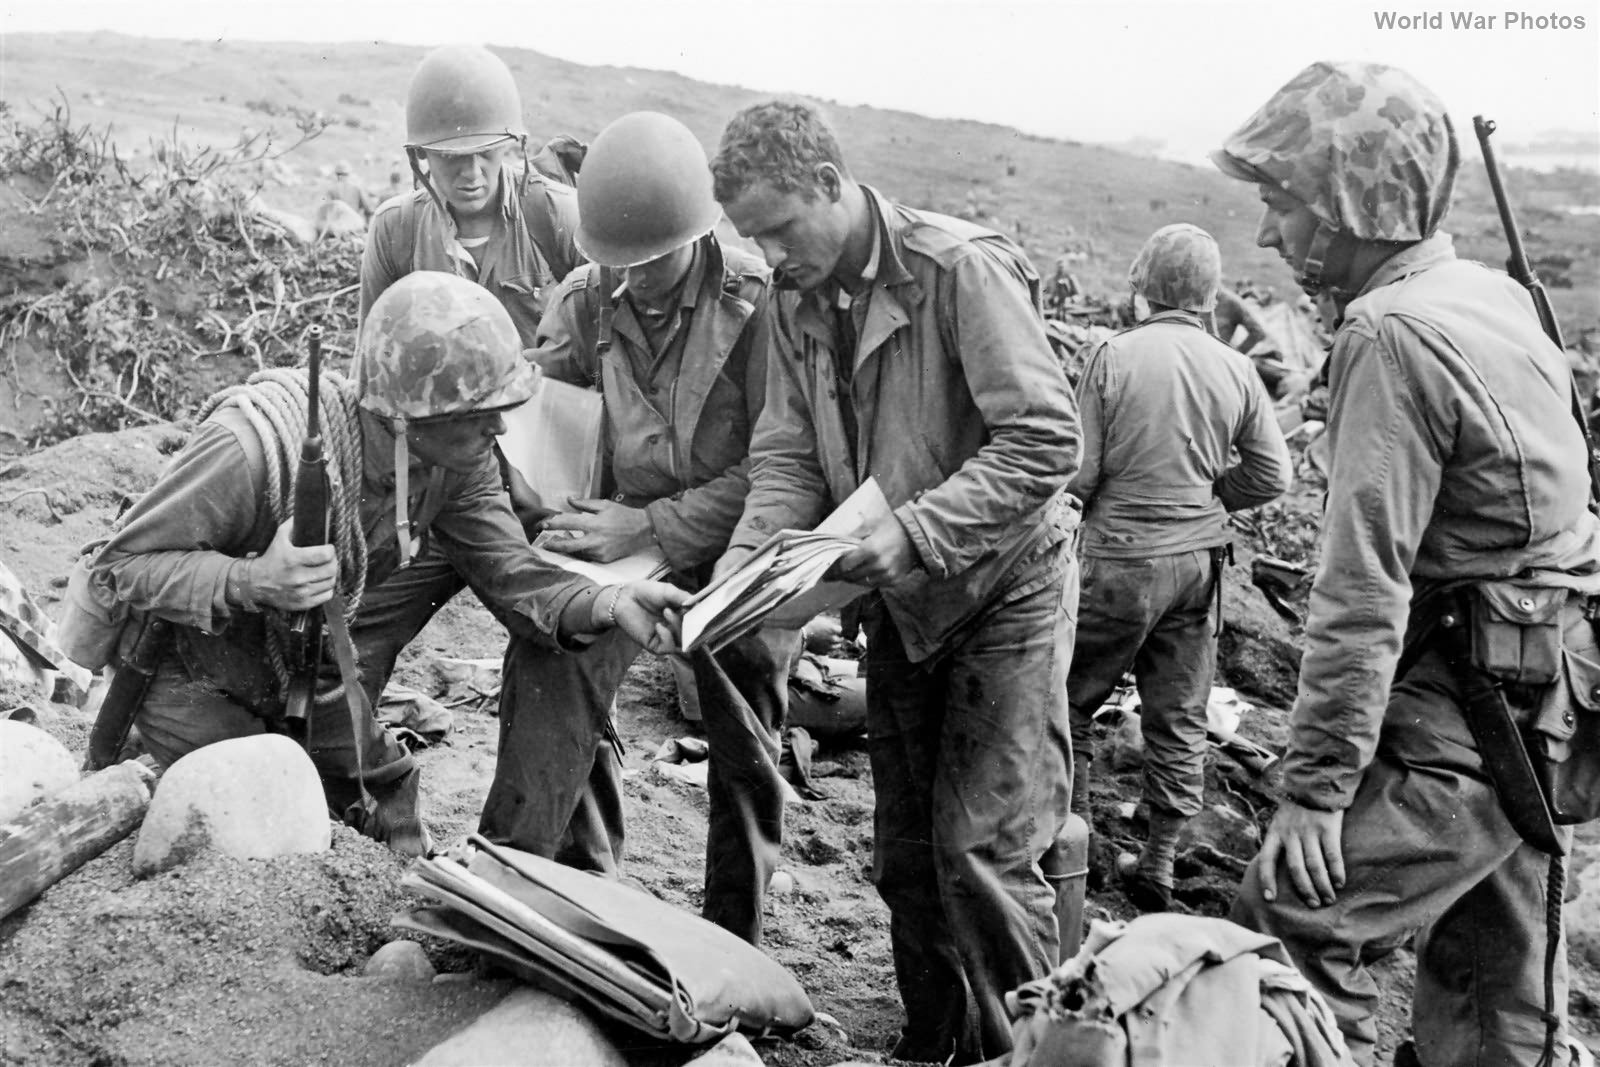 Marine patrol studies Japanese maps on Iwo Jima